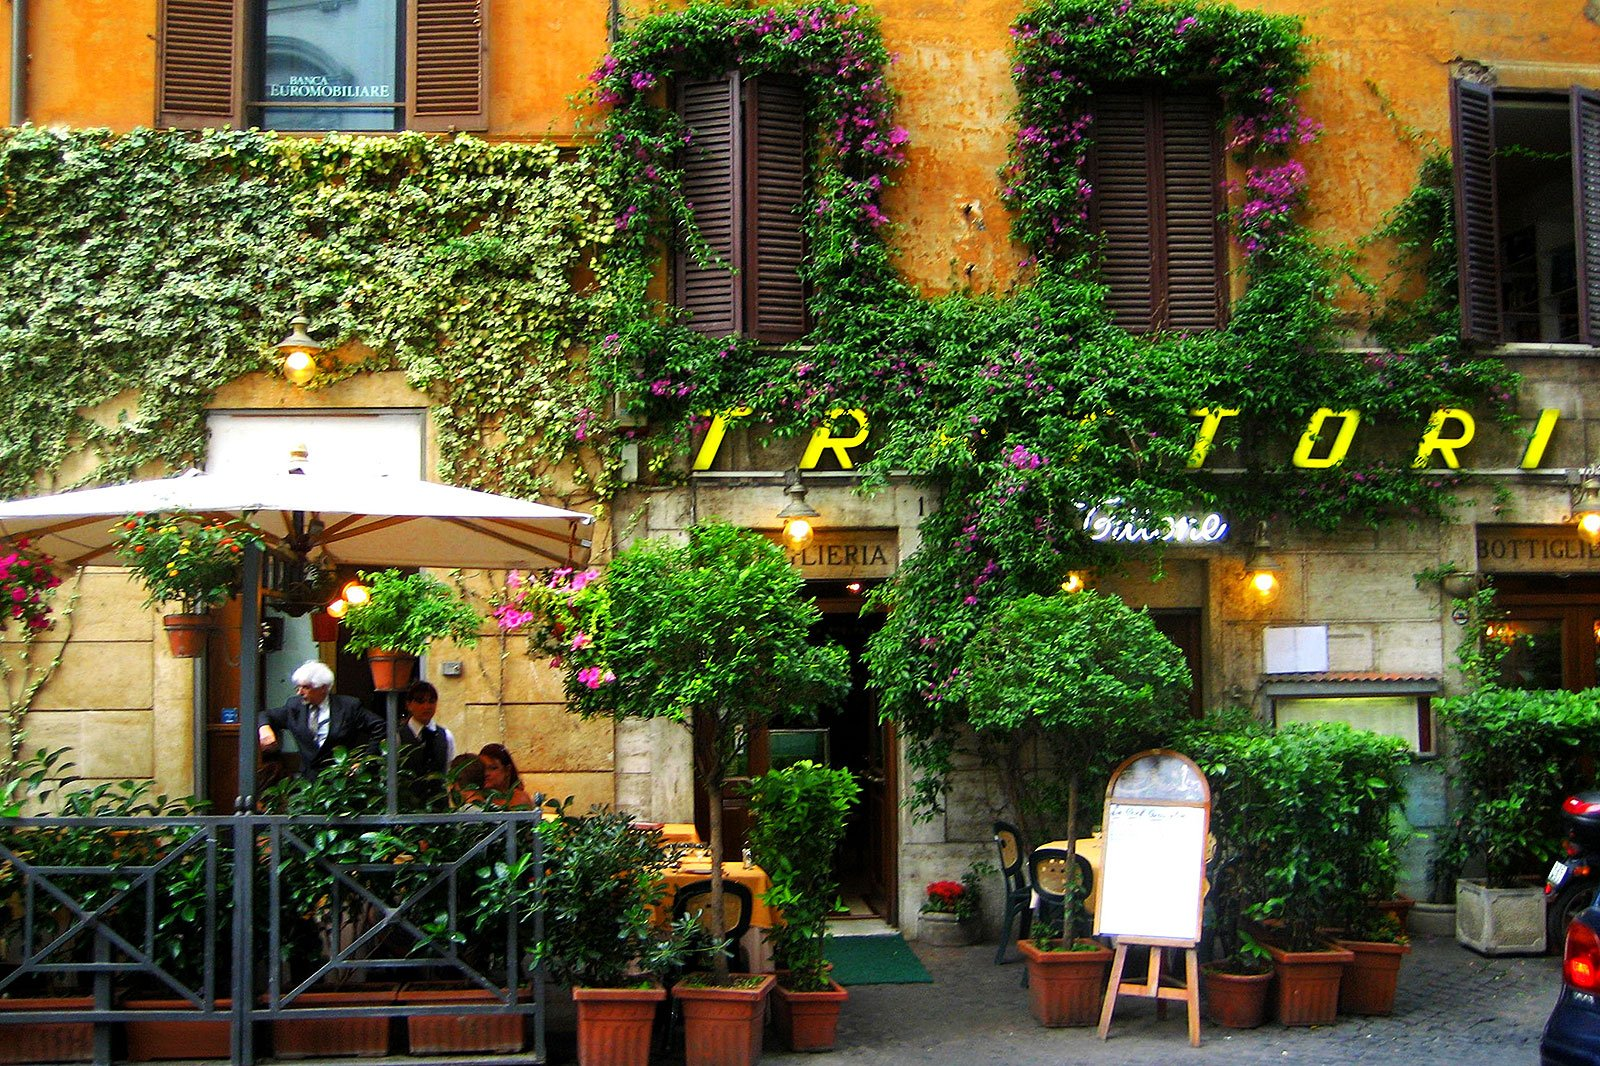 How to have a dinner in trattoria in Rome